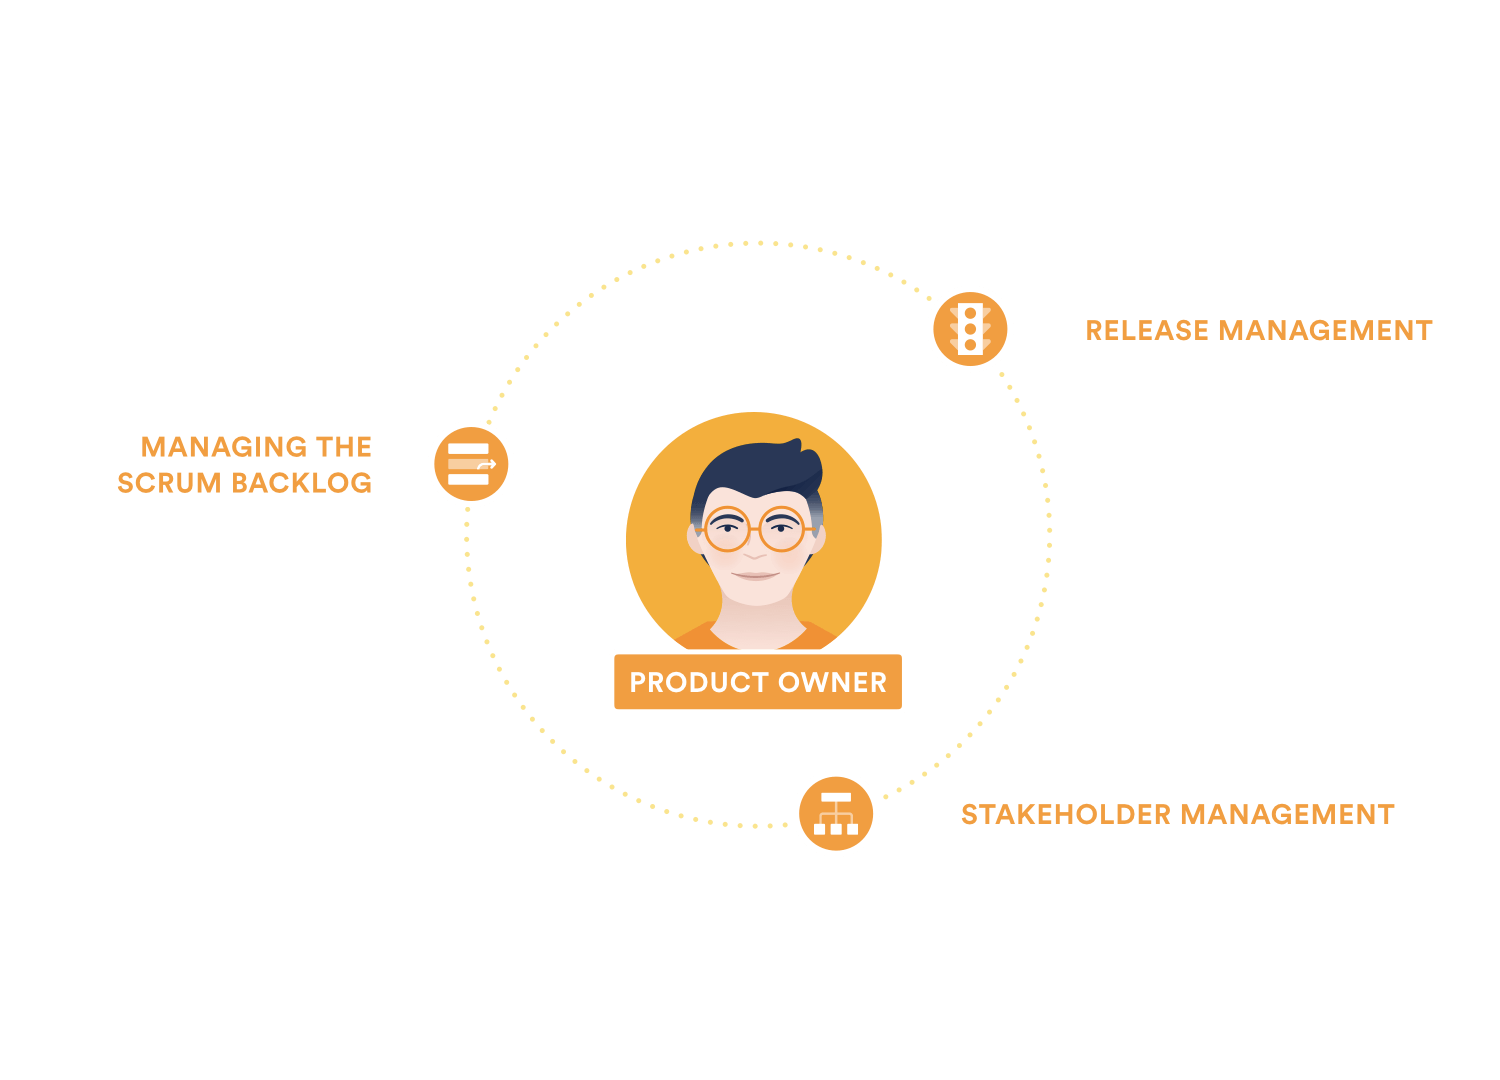 A diagram showing the product owner's responsibilities: Manage the product backlog, release management, stakeholder management.